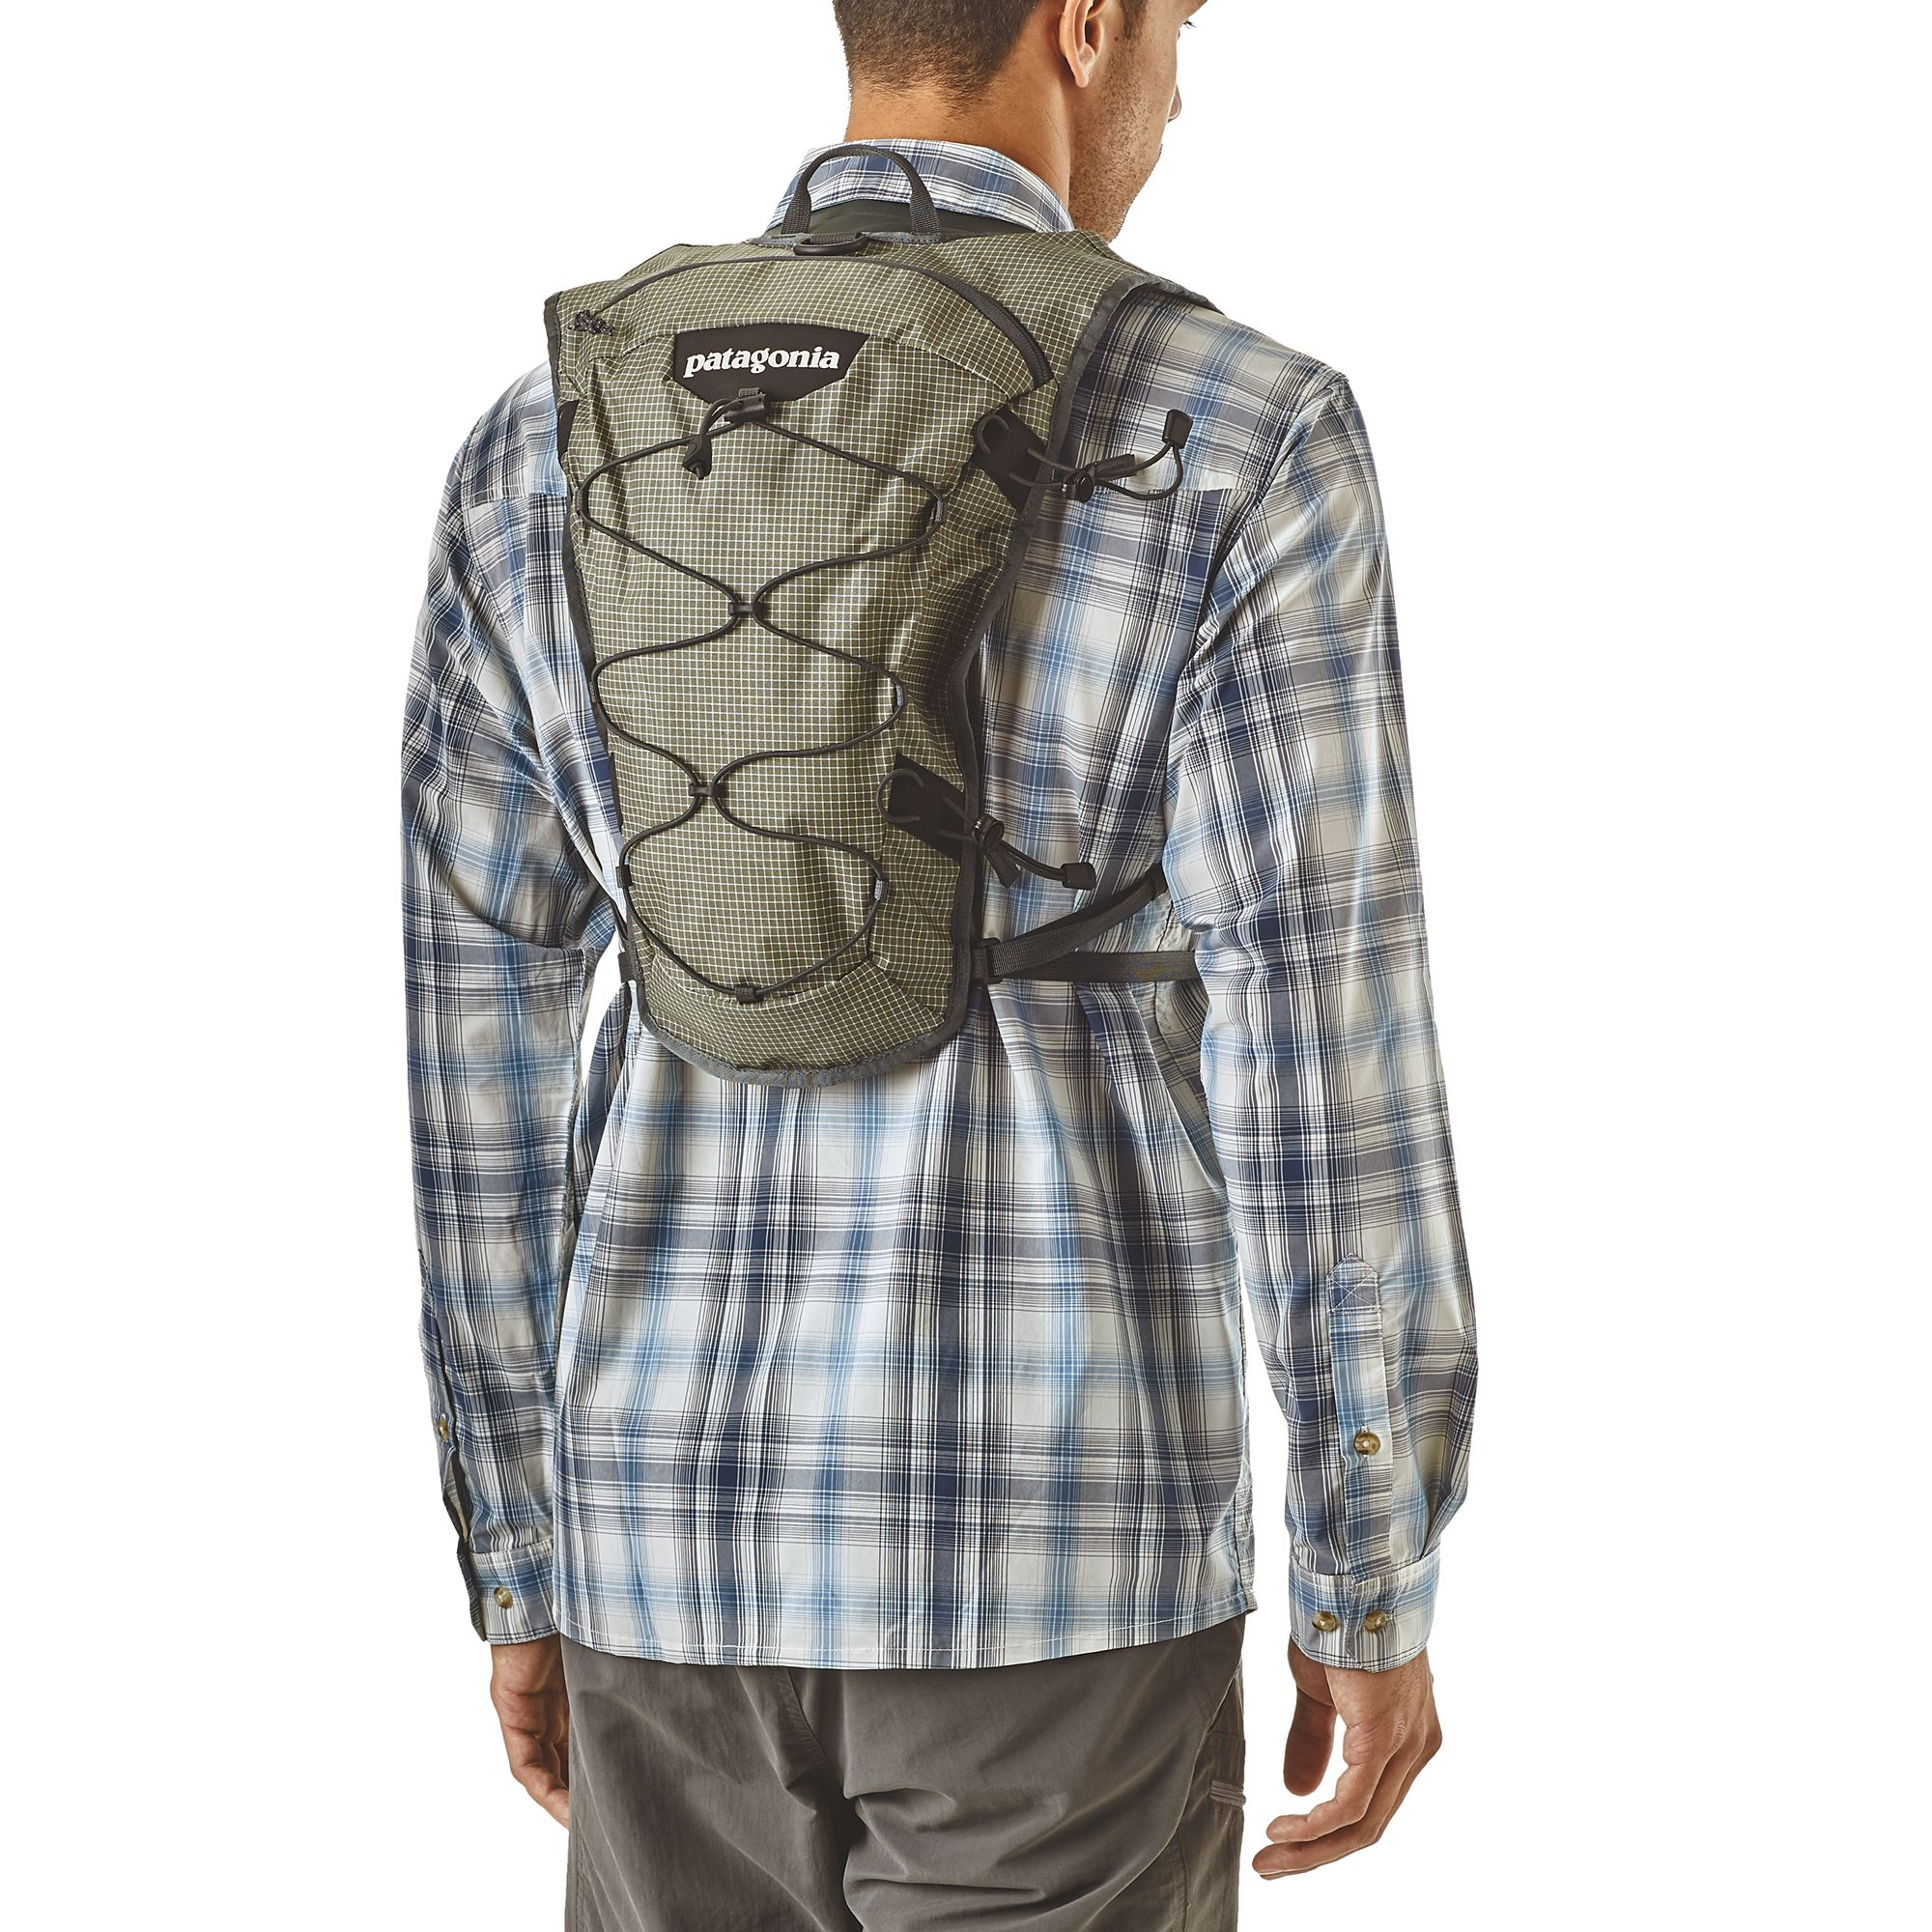 Hybrid Pack Vest Patagonia - Ready to fish